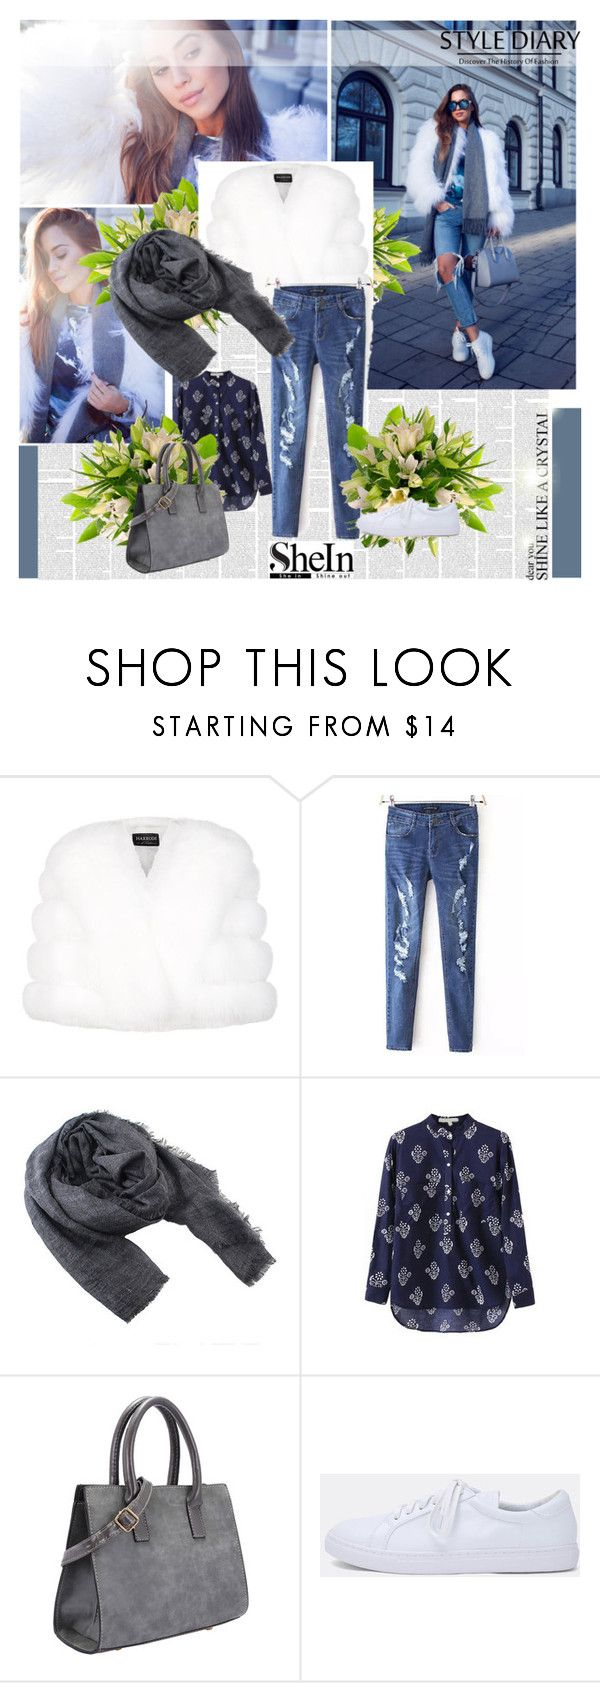 """Shein 7"" by followme734 ❤ liked on Polyvore featuring Harrods and shein"